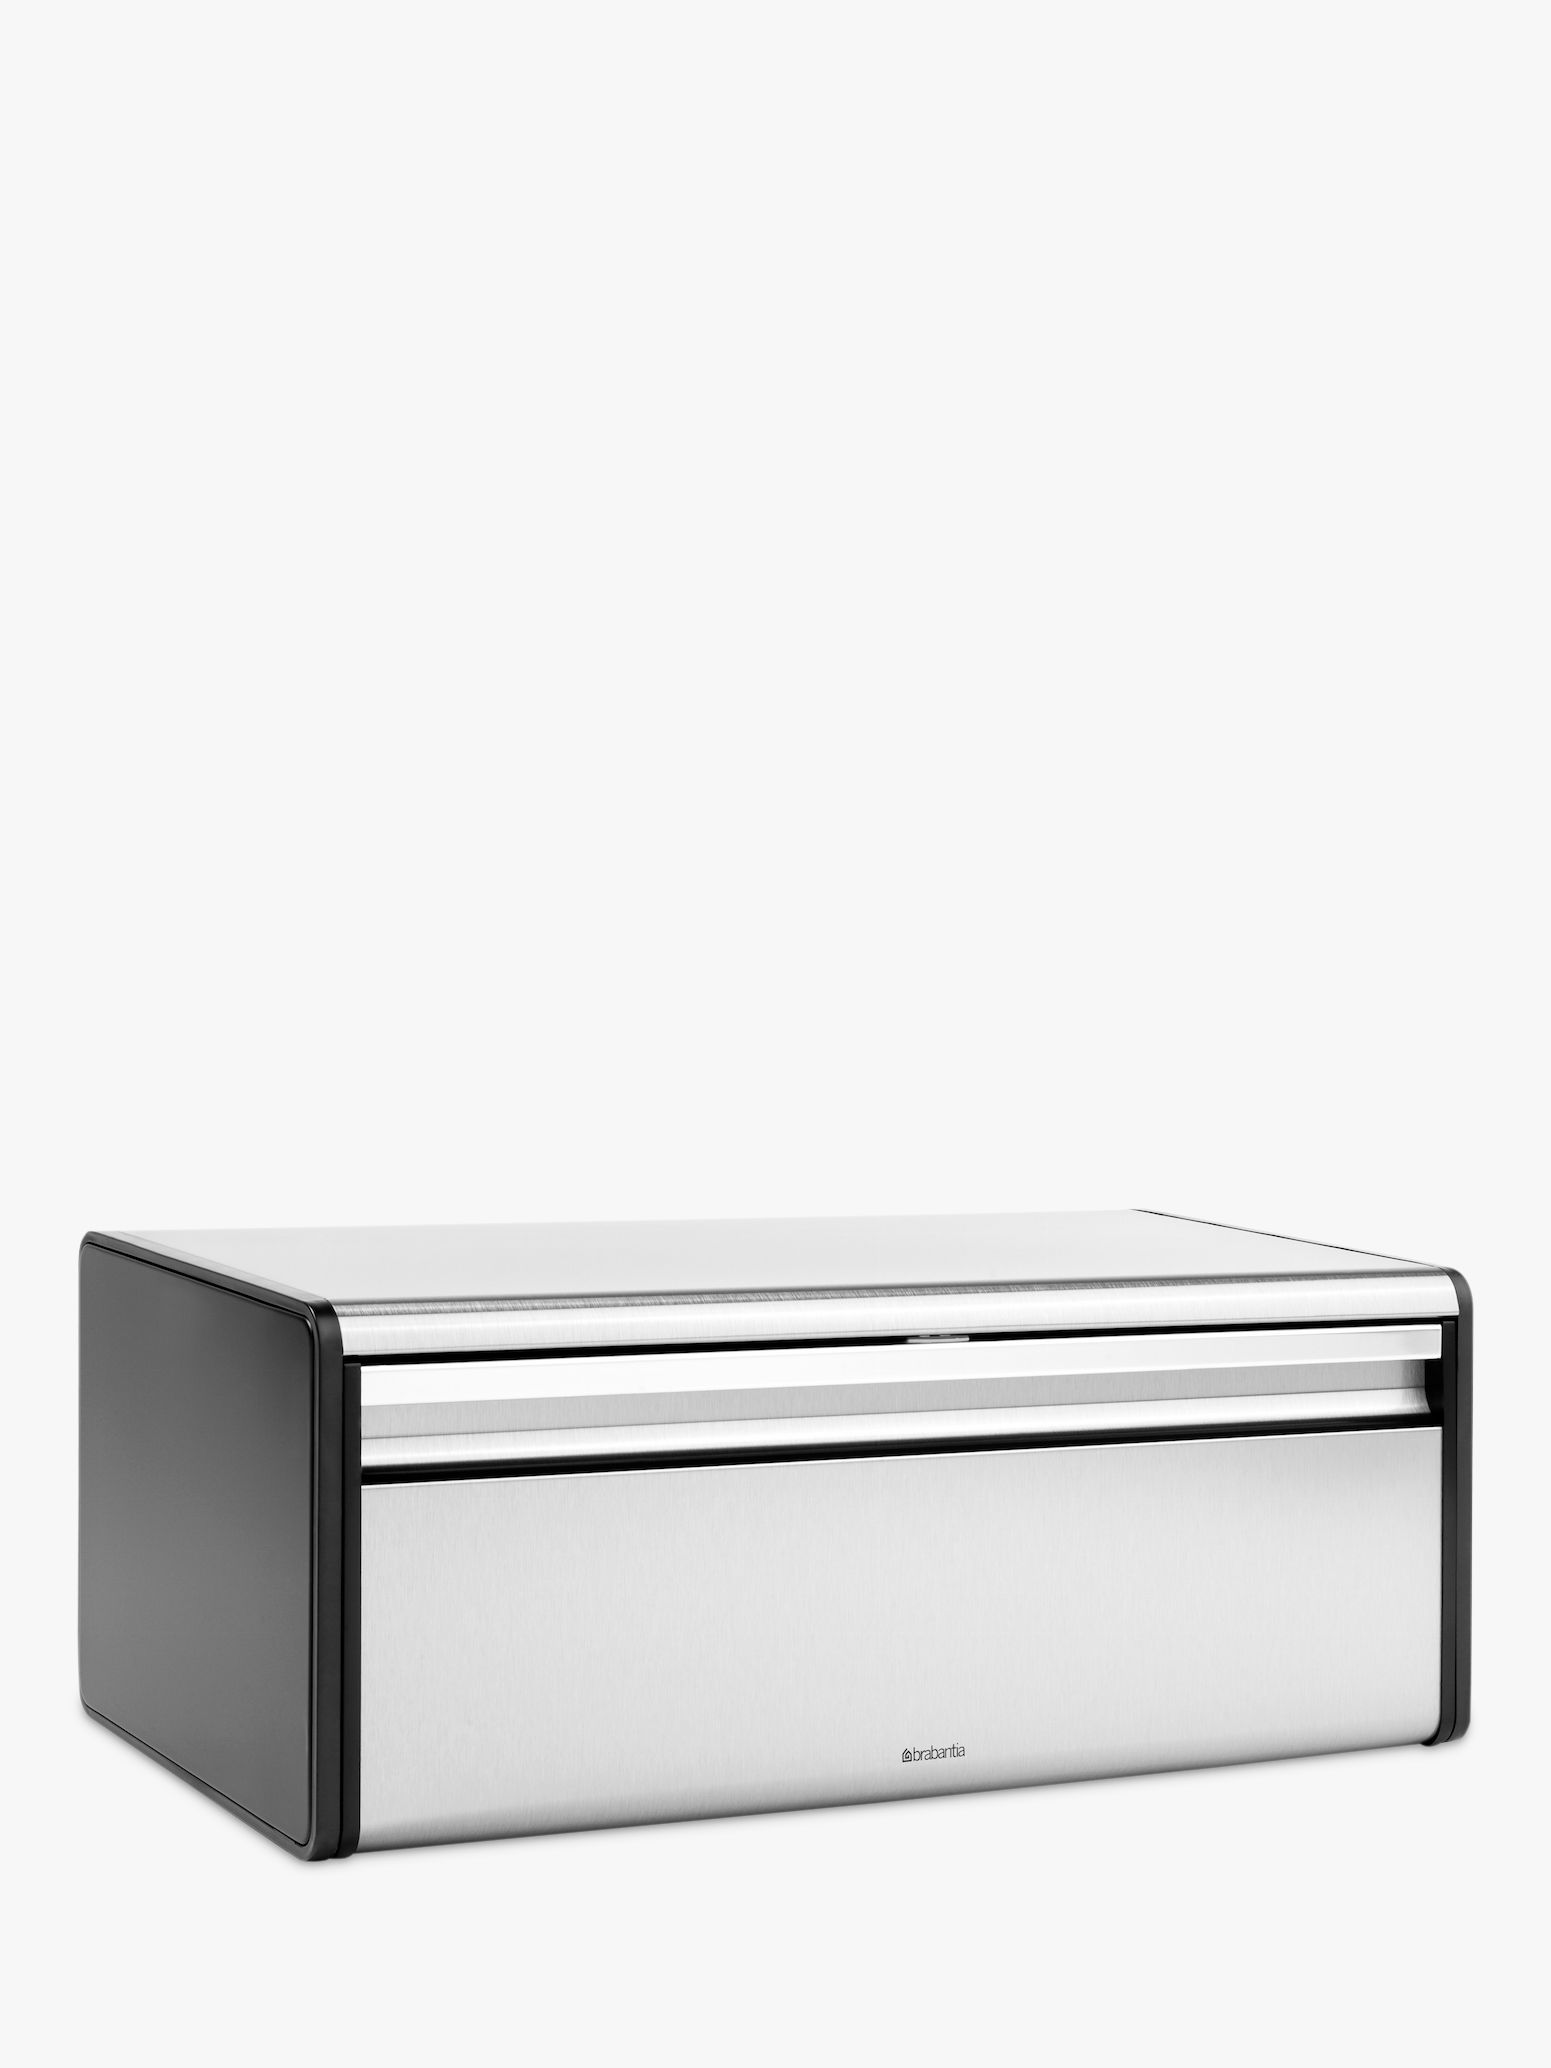 Brabantia Brabantia Fall Front Bread Bin, Chromed Steel